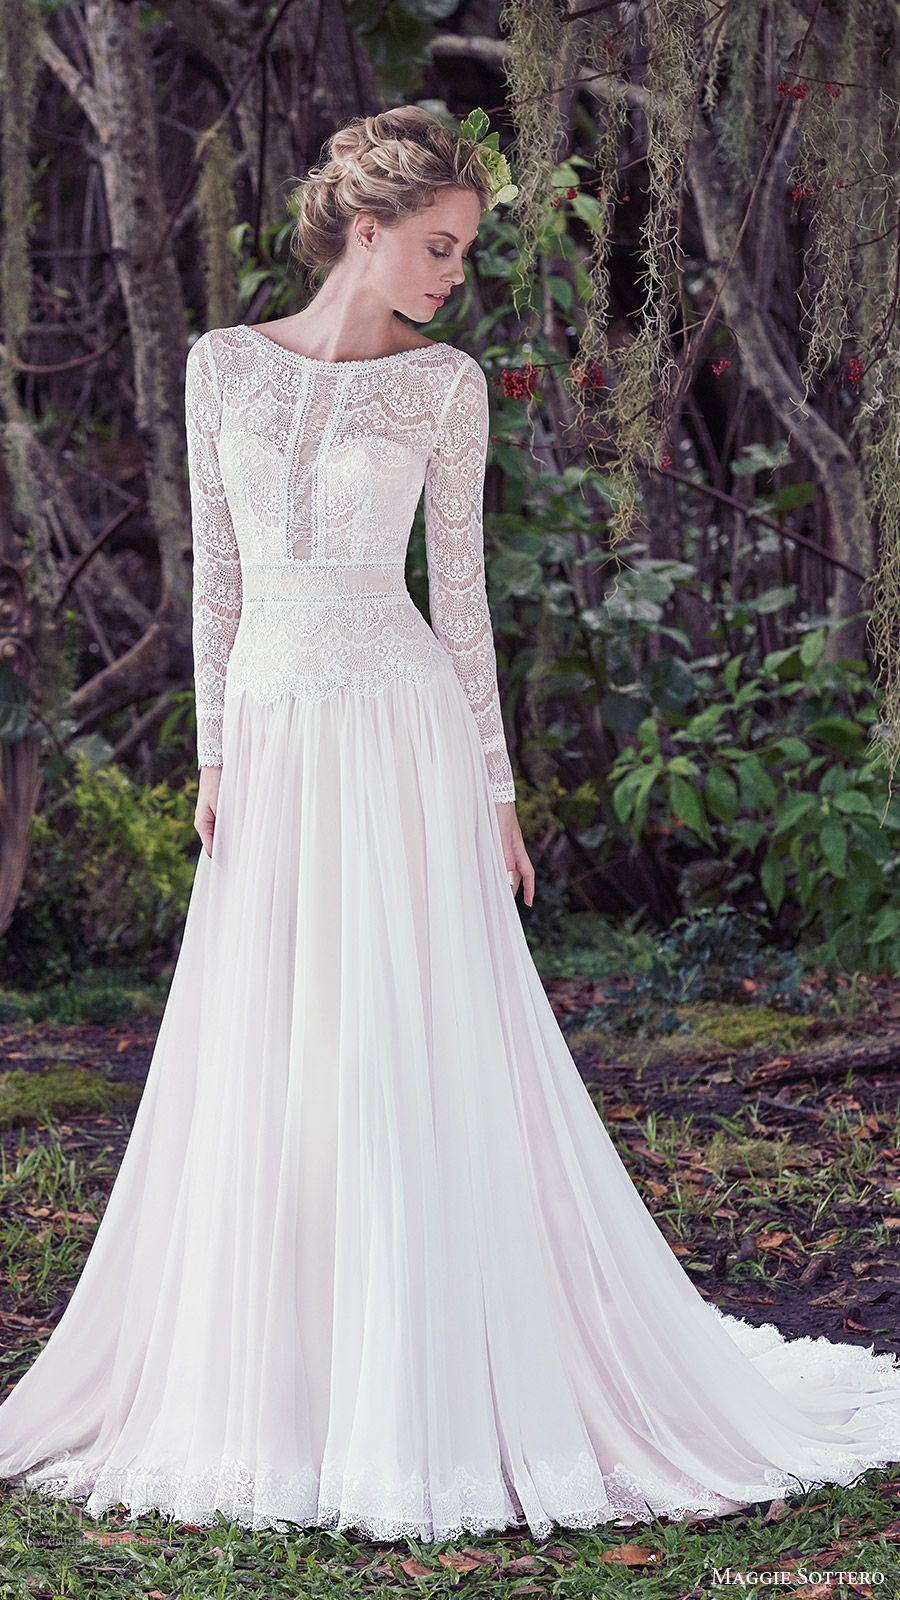 Maggie Sottero Fall 2016 Wedding Dresses Lisette Bridal Collection Highlights